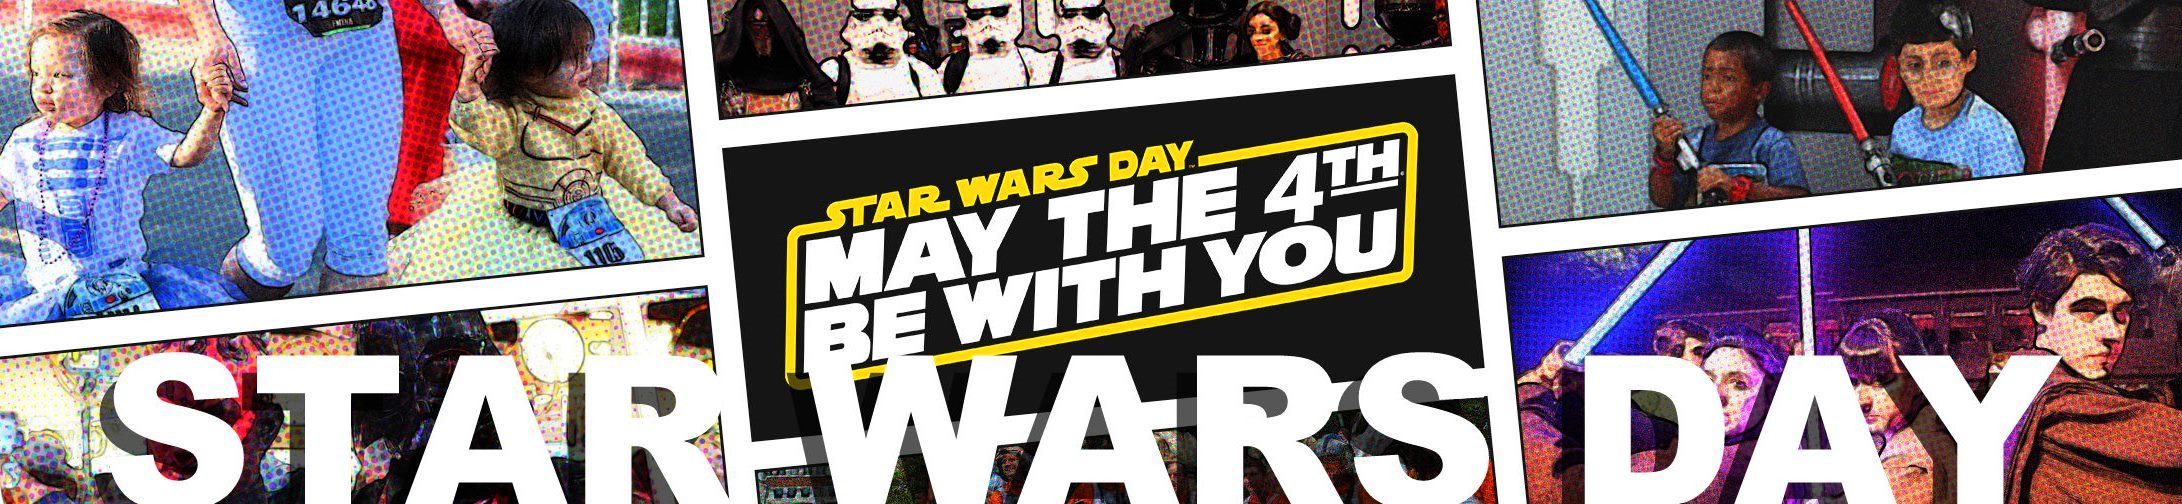 Star Wars Day May The Fourth Be With You official website banner cover header fan photos 4th May 2015